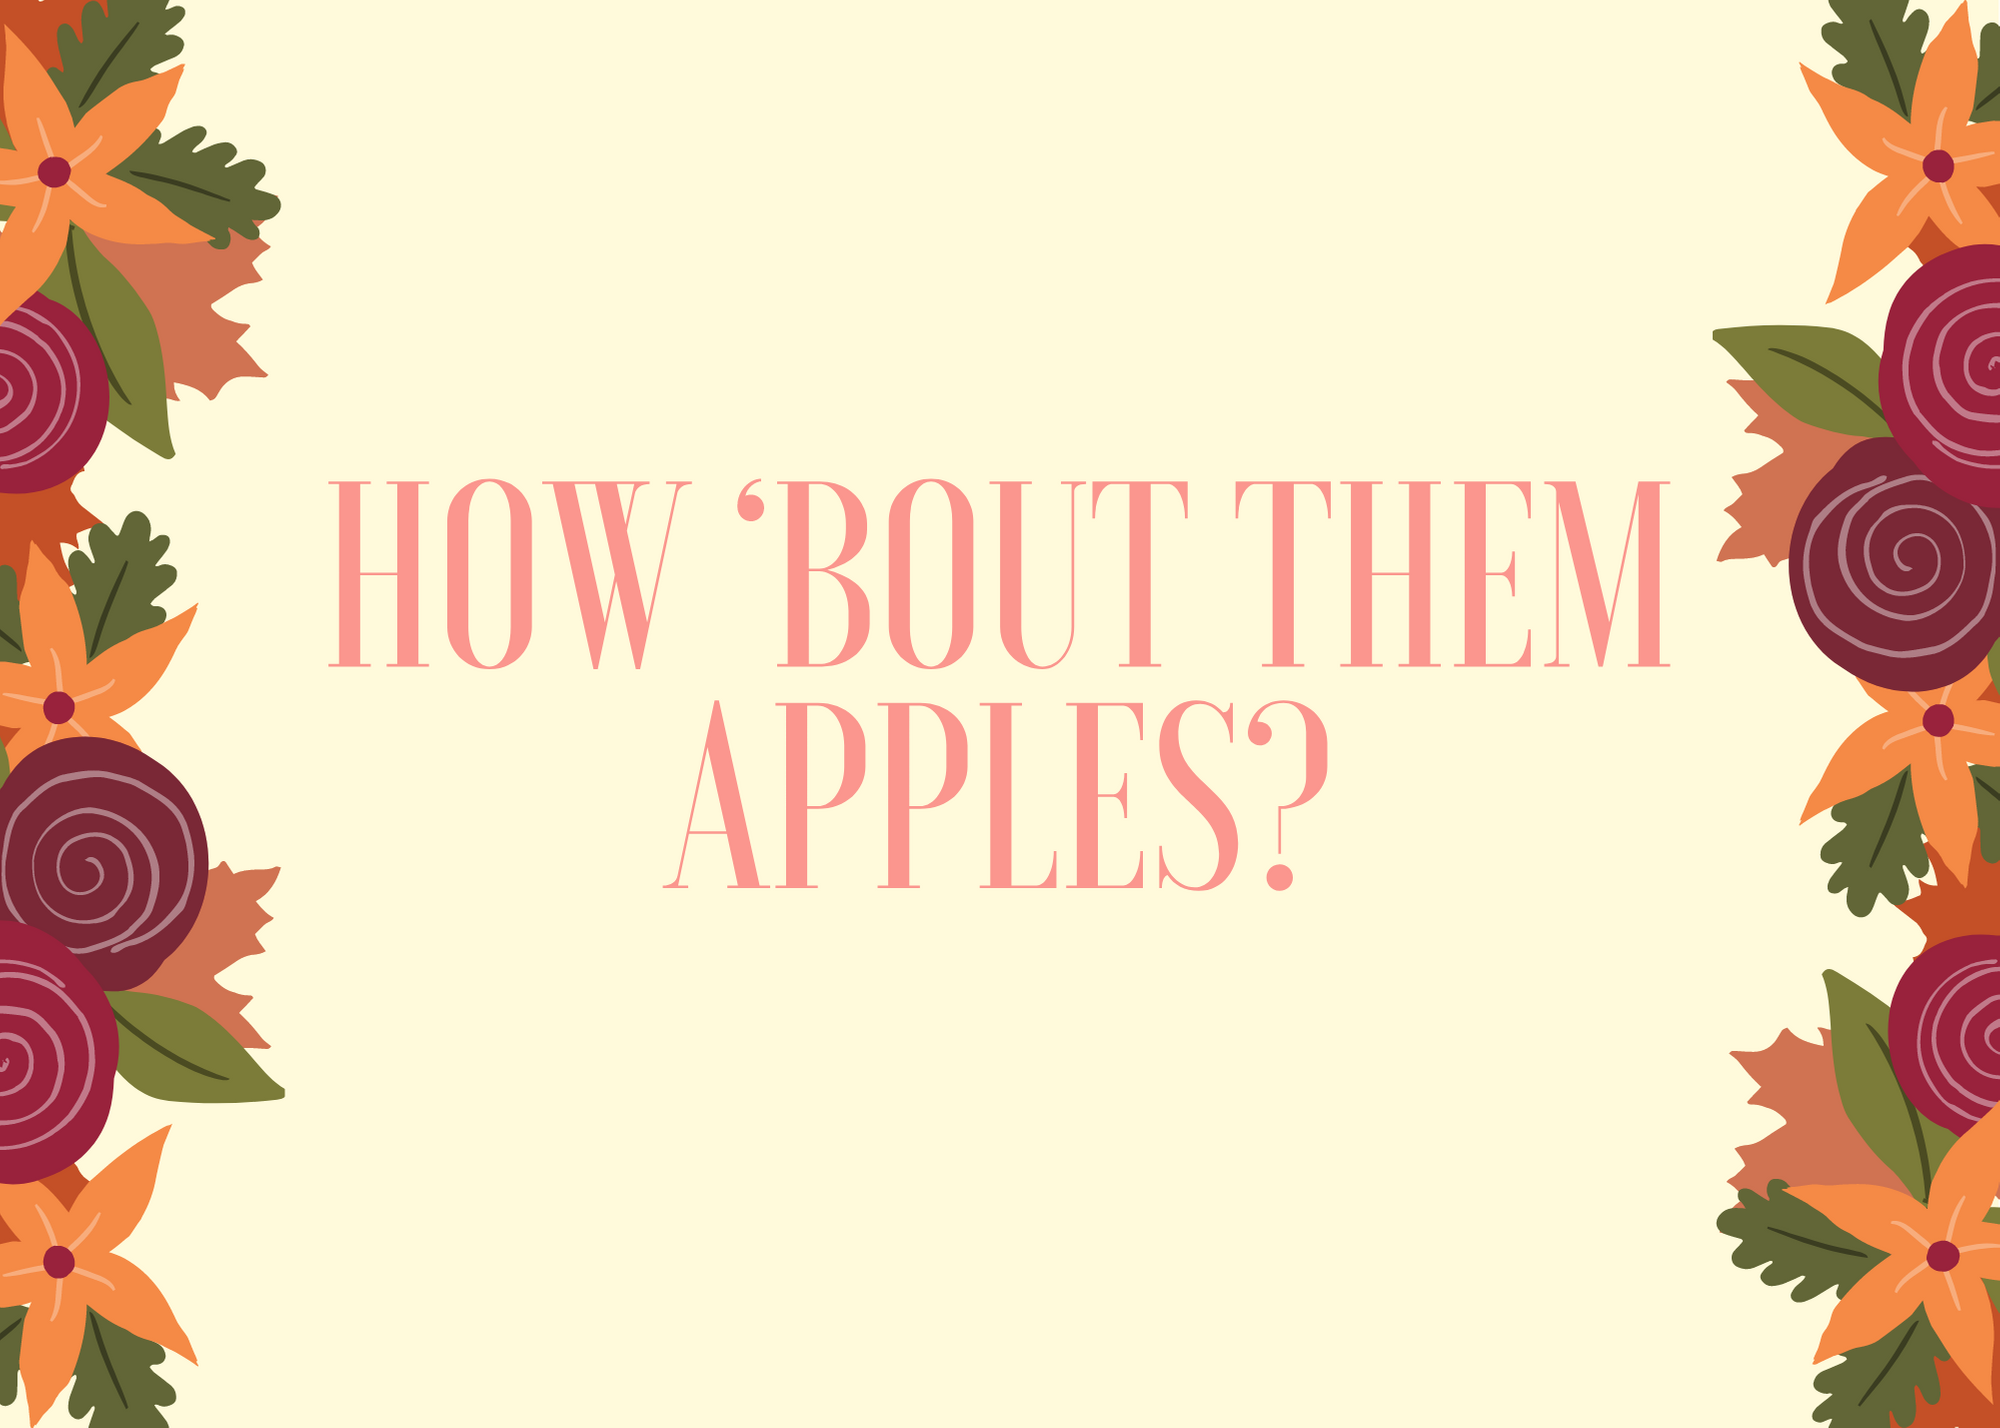 Funny Fall Instagram Caption About Apples